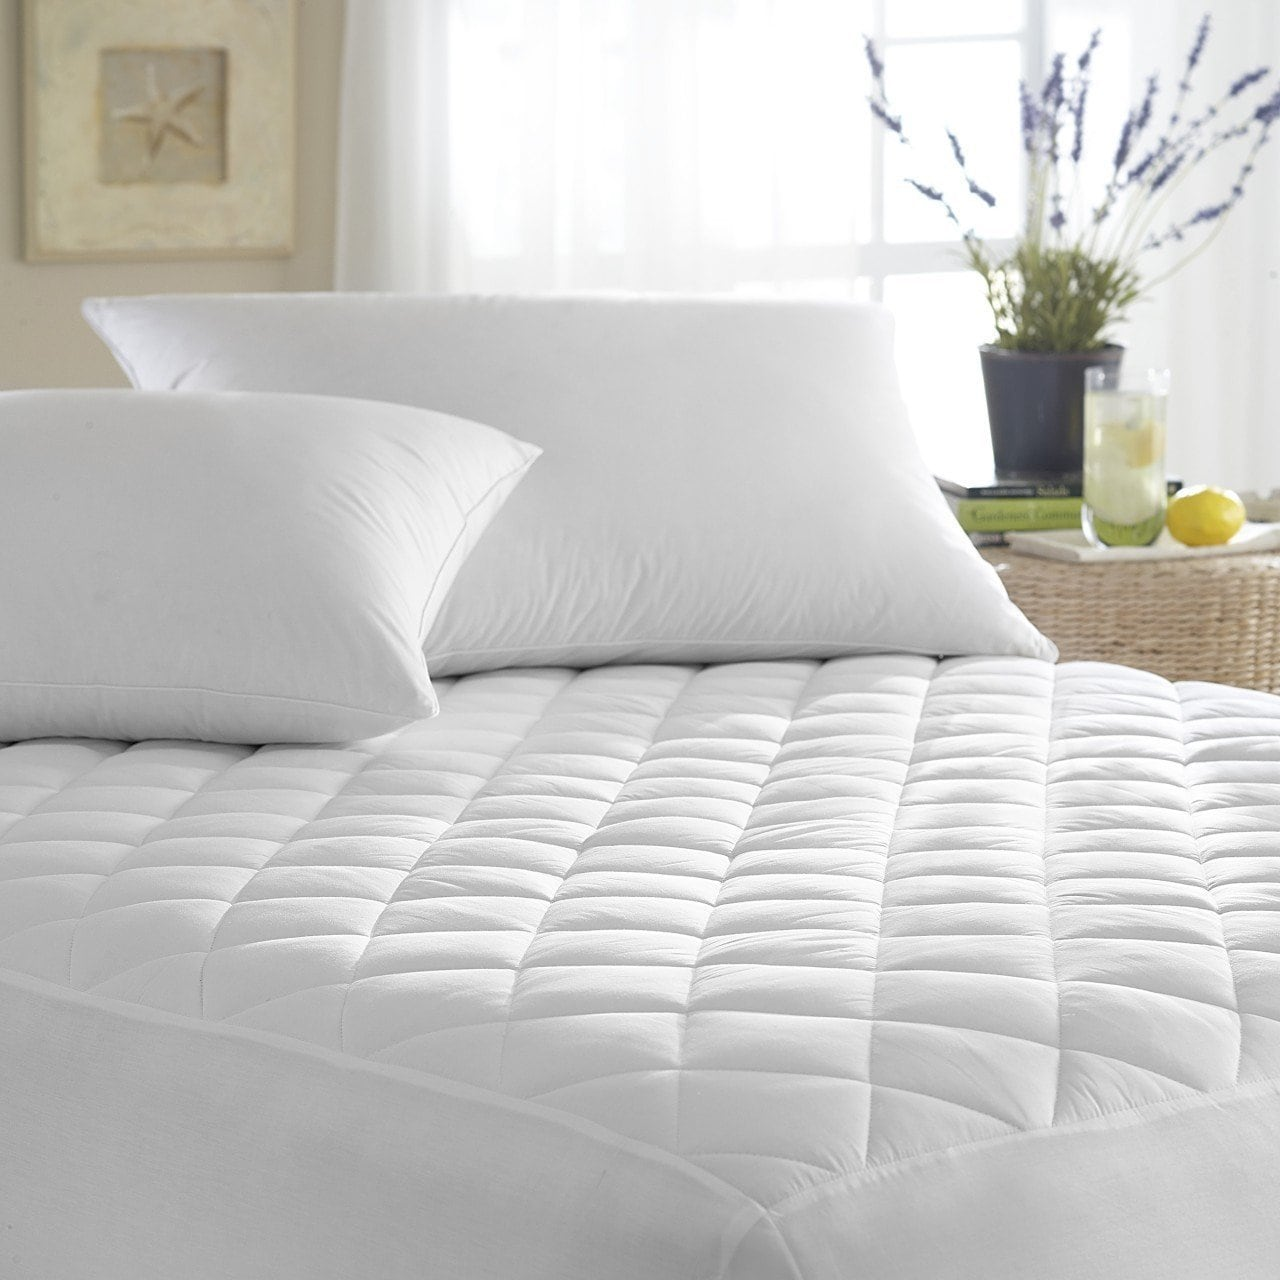 Bed Bugs Mattress Cover Ultra Soft Quilted Waterproof Hypoallergenic Bedbug Mattress Cover White